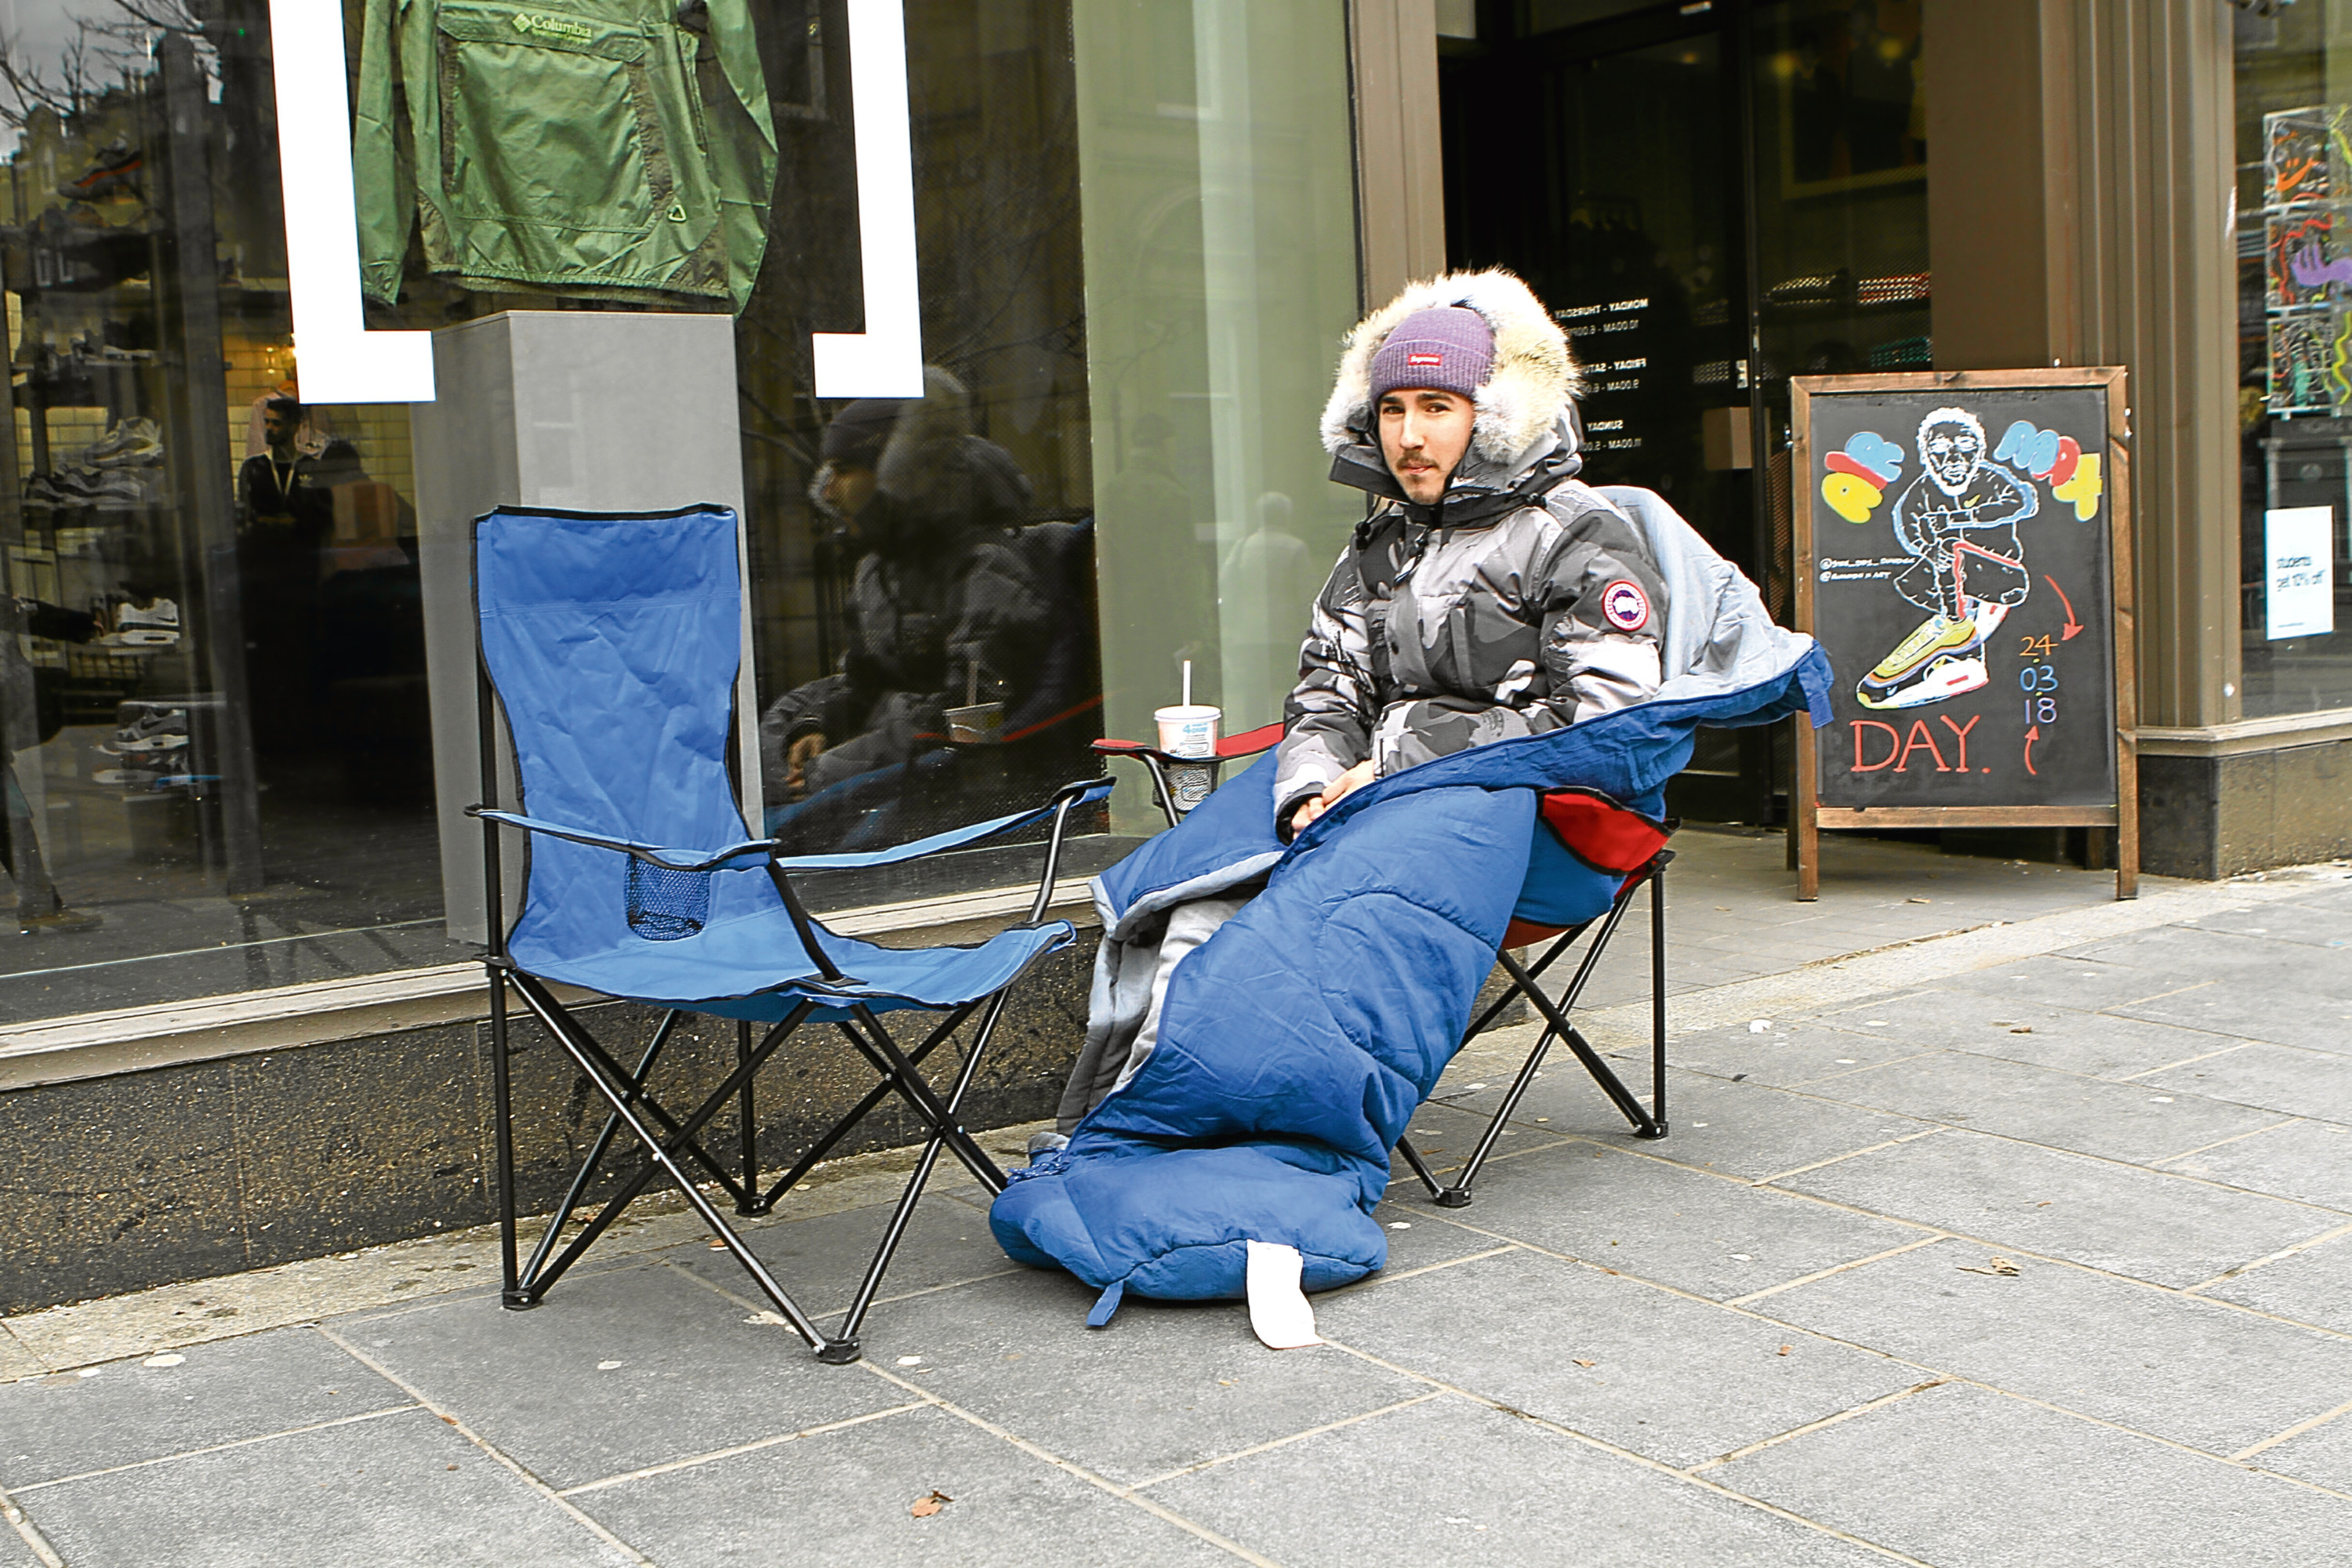 Connor Curran camped outside Size?, waiting for the Nike Sean Wotherspoon trainers to go on sale.